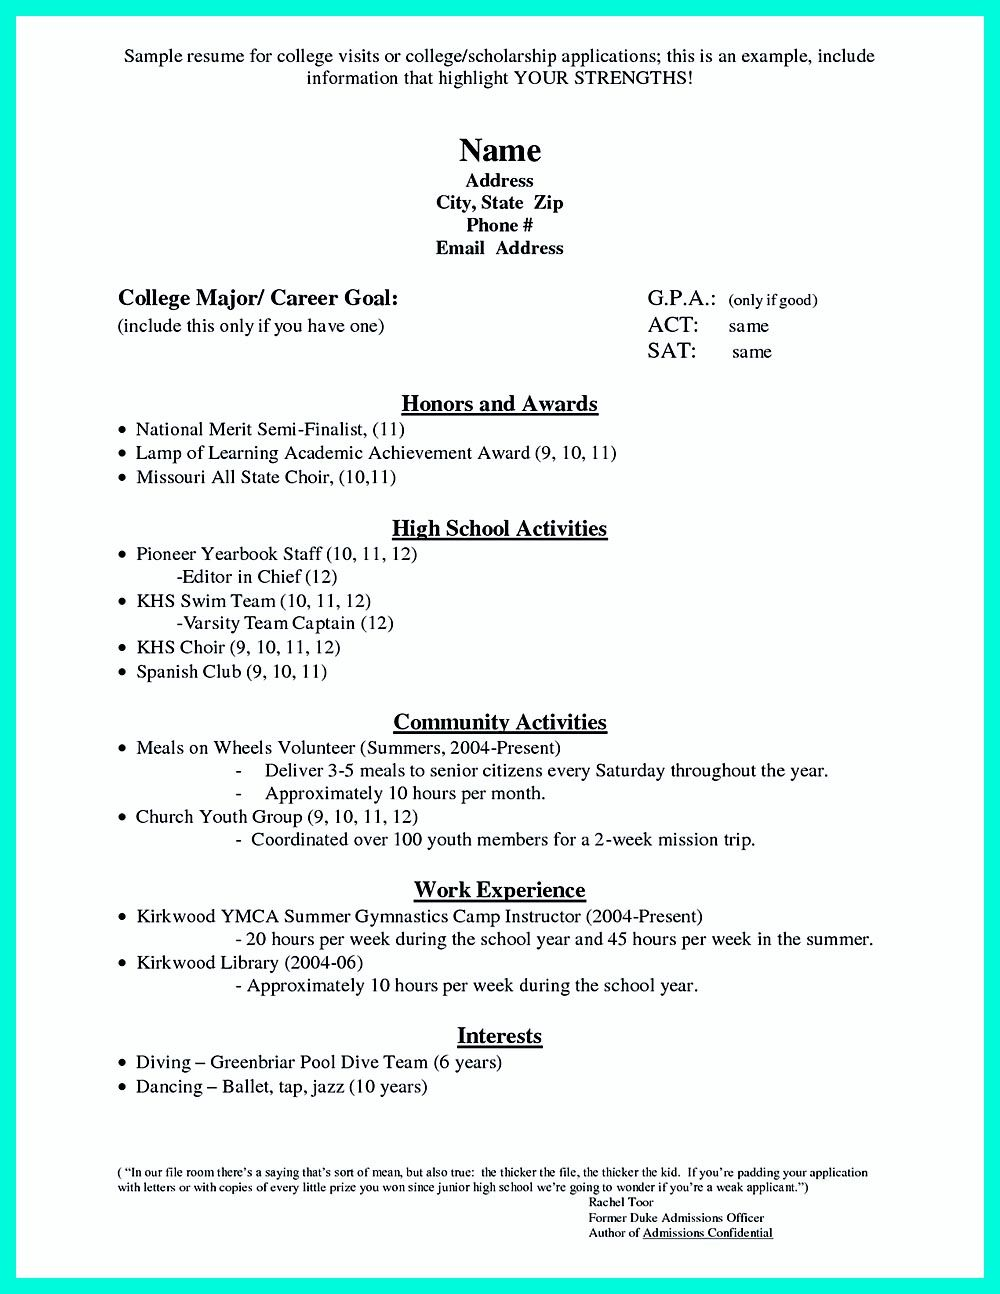 College Student Resume Template Word For High School Students It Is Sometimes Troublesome To Write